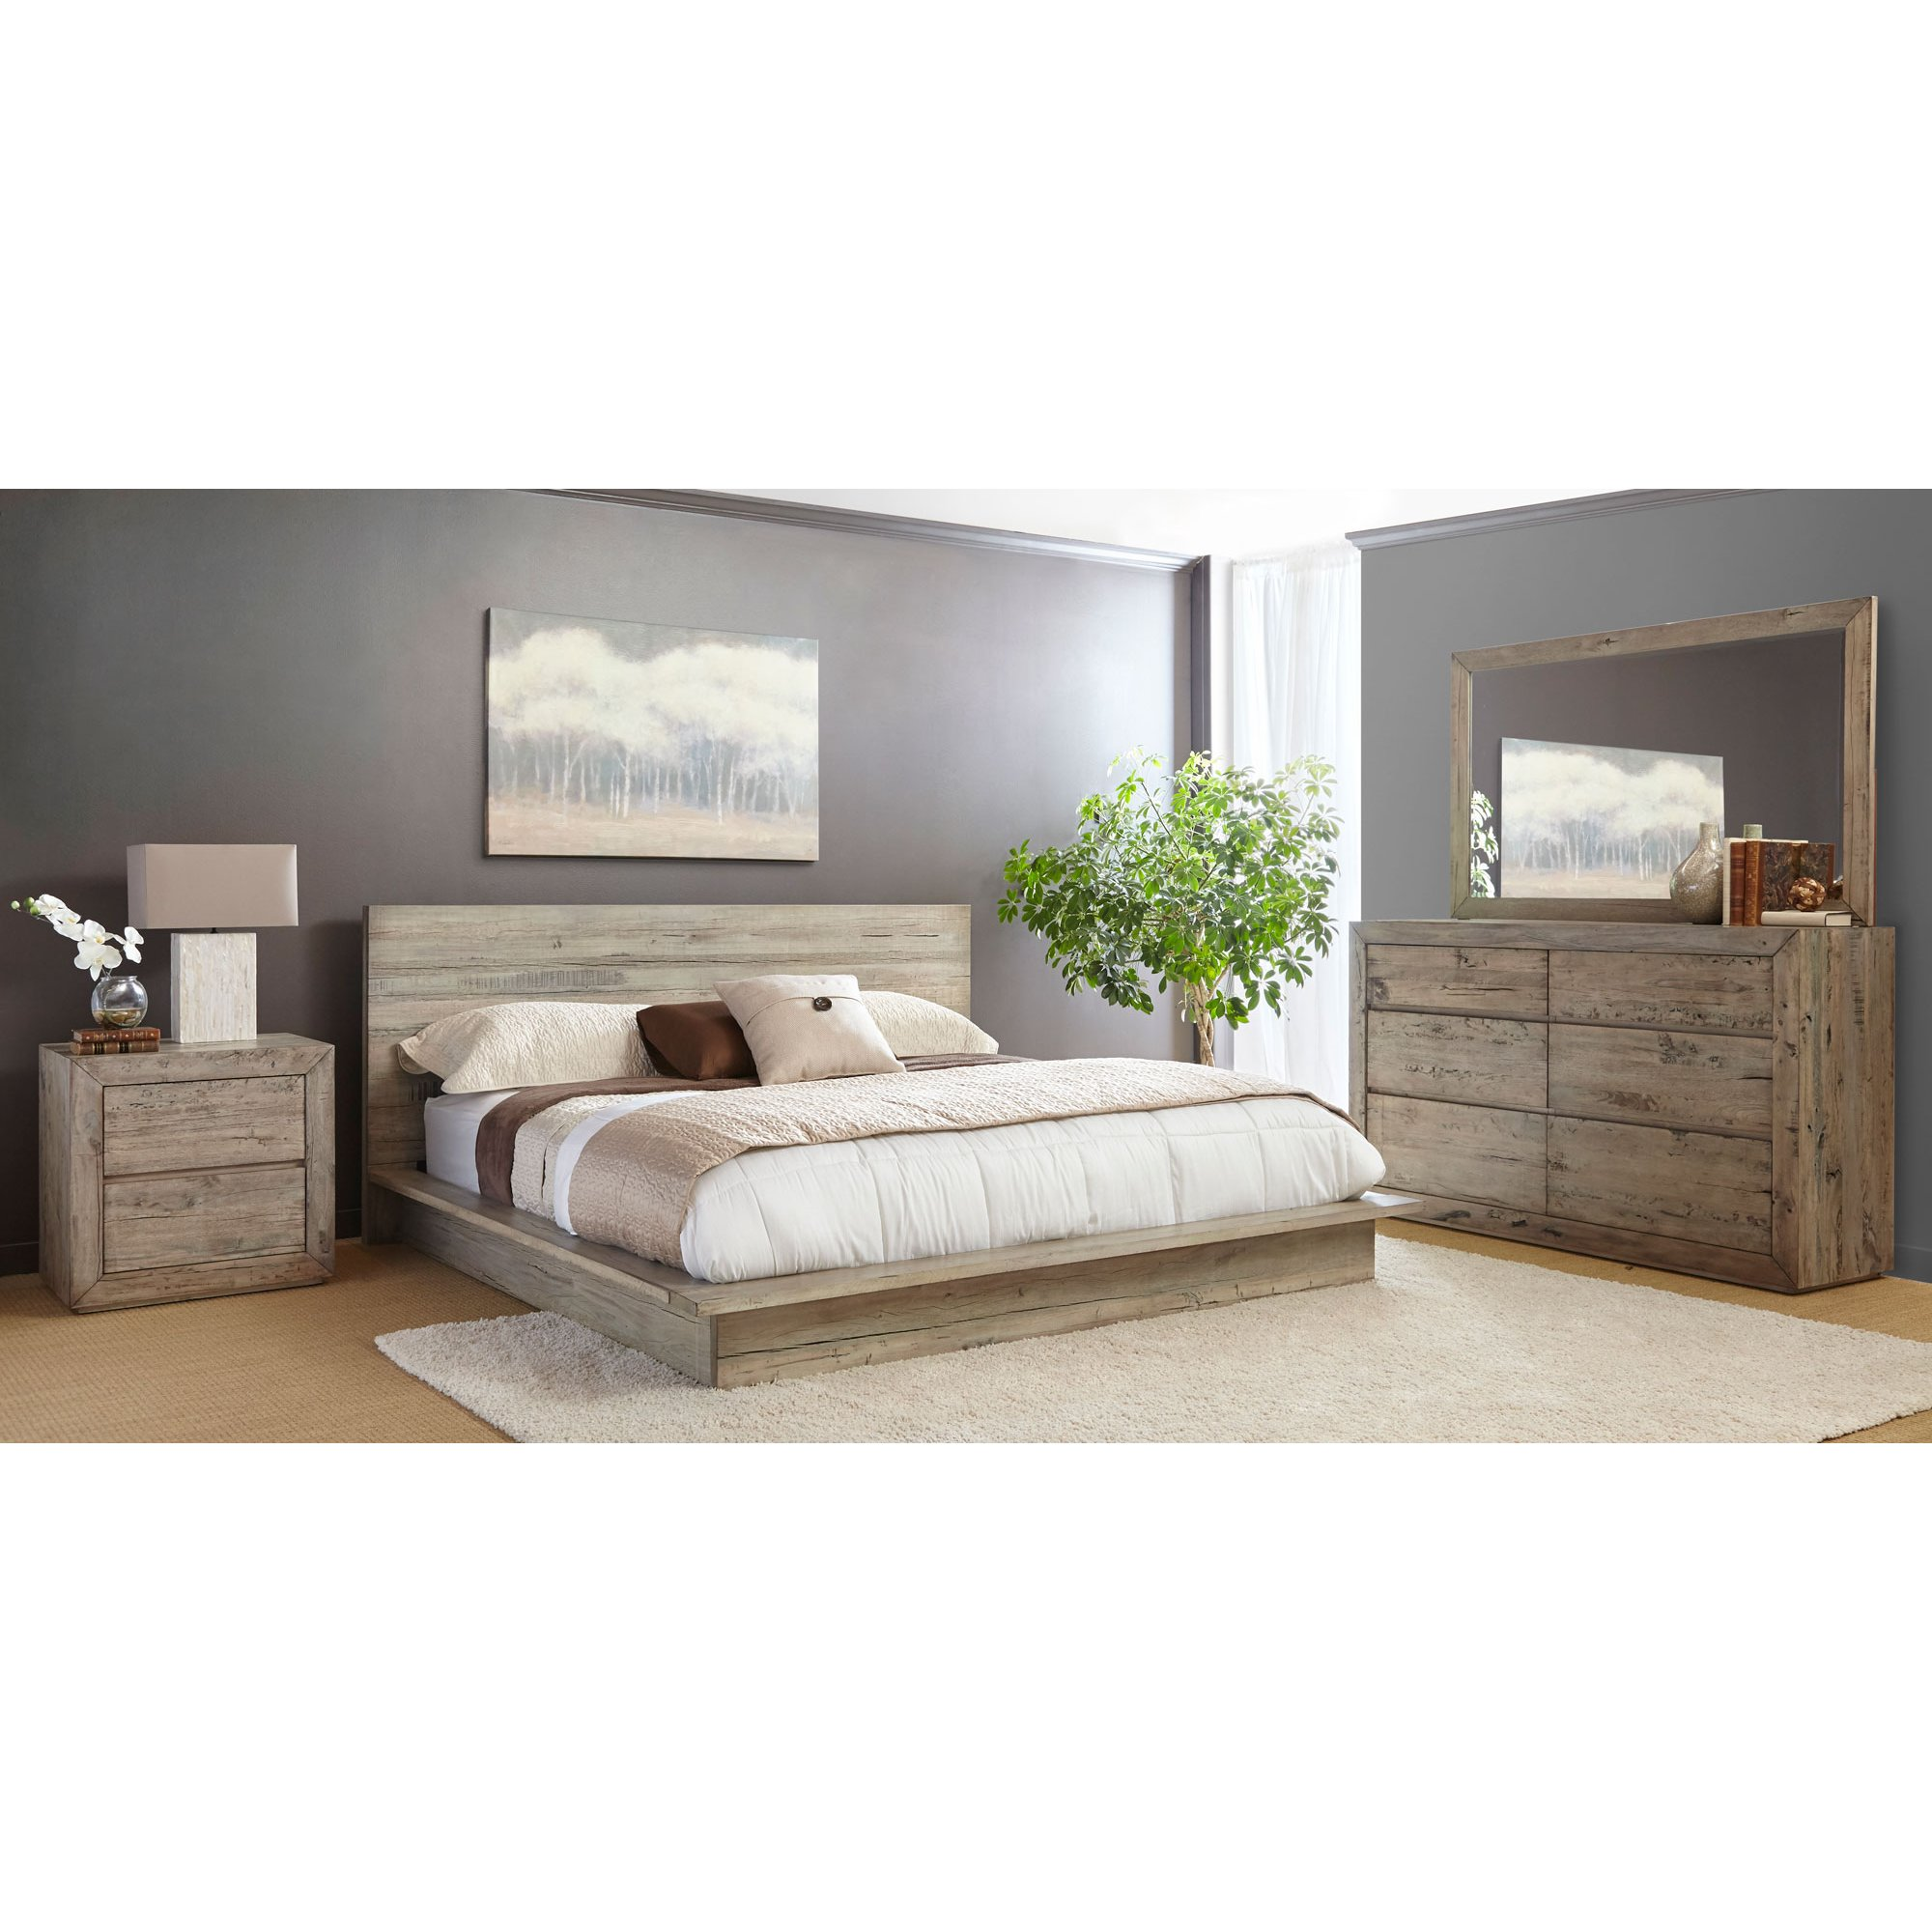 ... White Washed Modern Rustic 6 Piece King Bedroom Set   Renewal ...